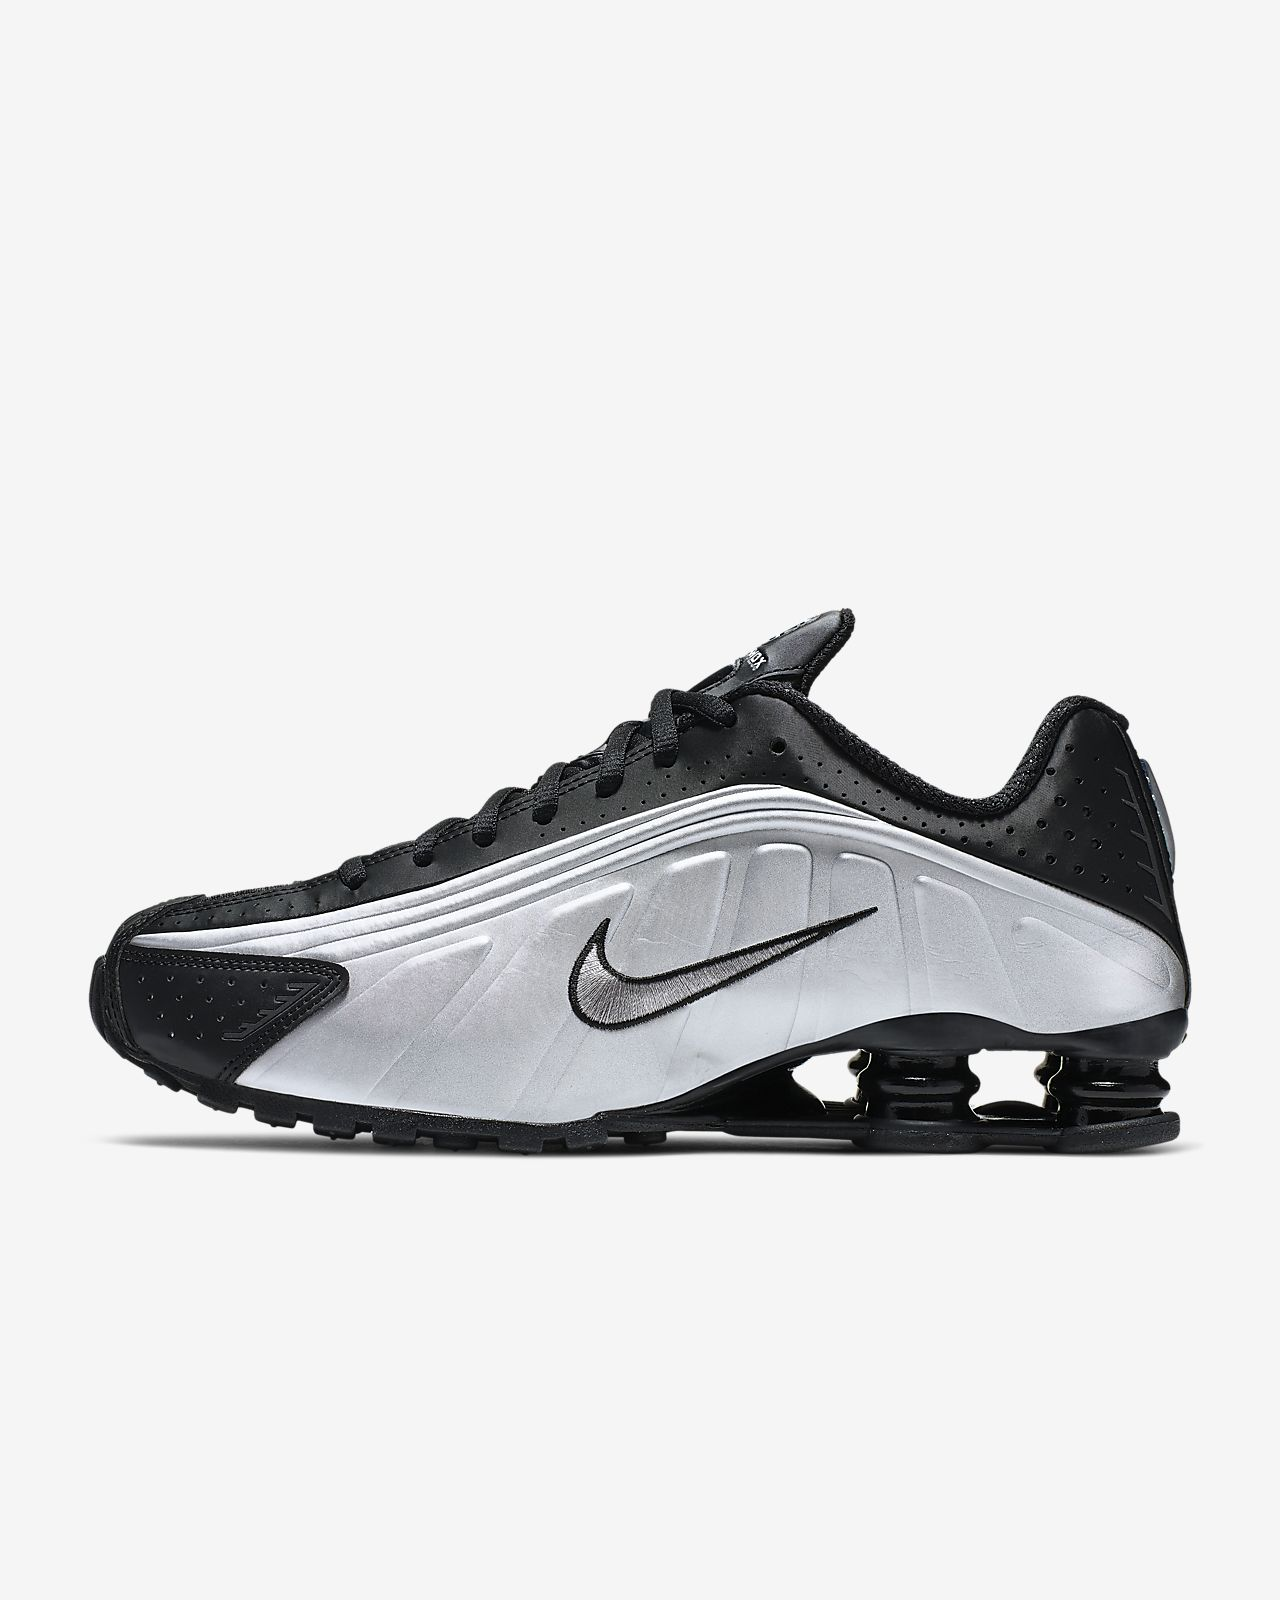 Chaussure Nike Shox R4 pour Homme